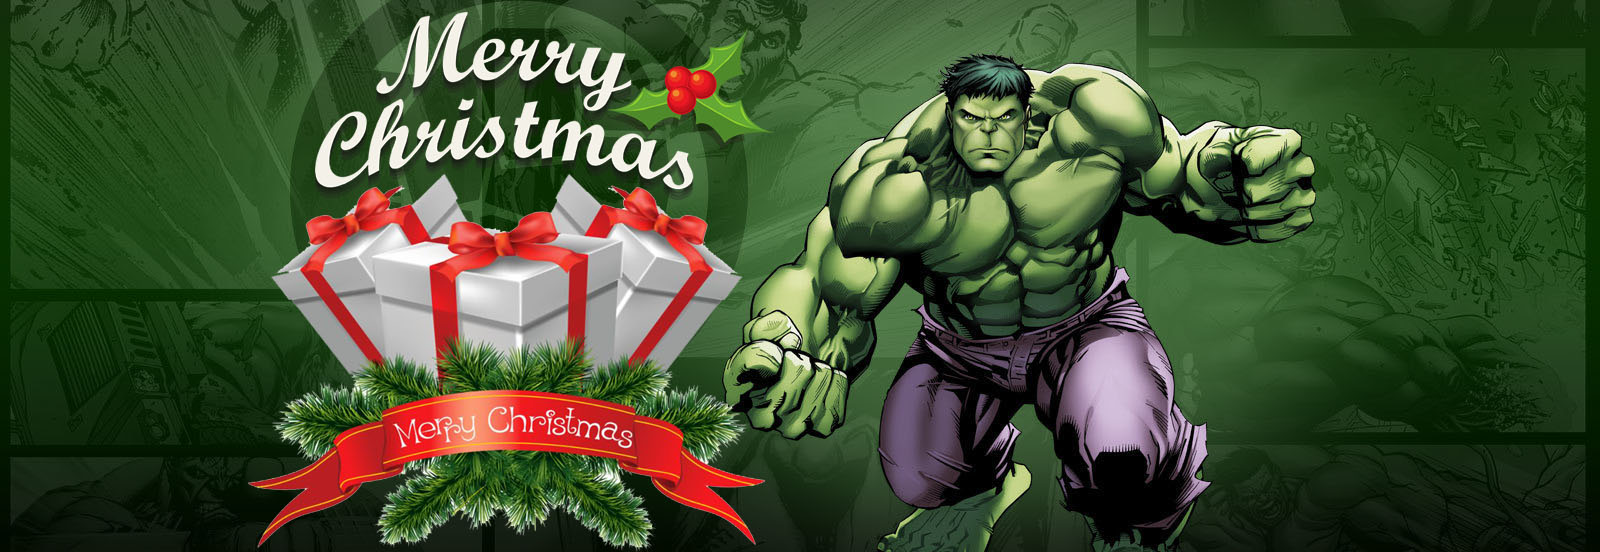 happy merry christmas greetings wishes super hero hulk kids hd wallpaper